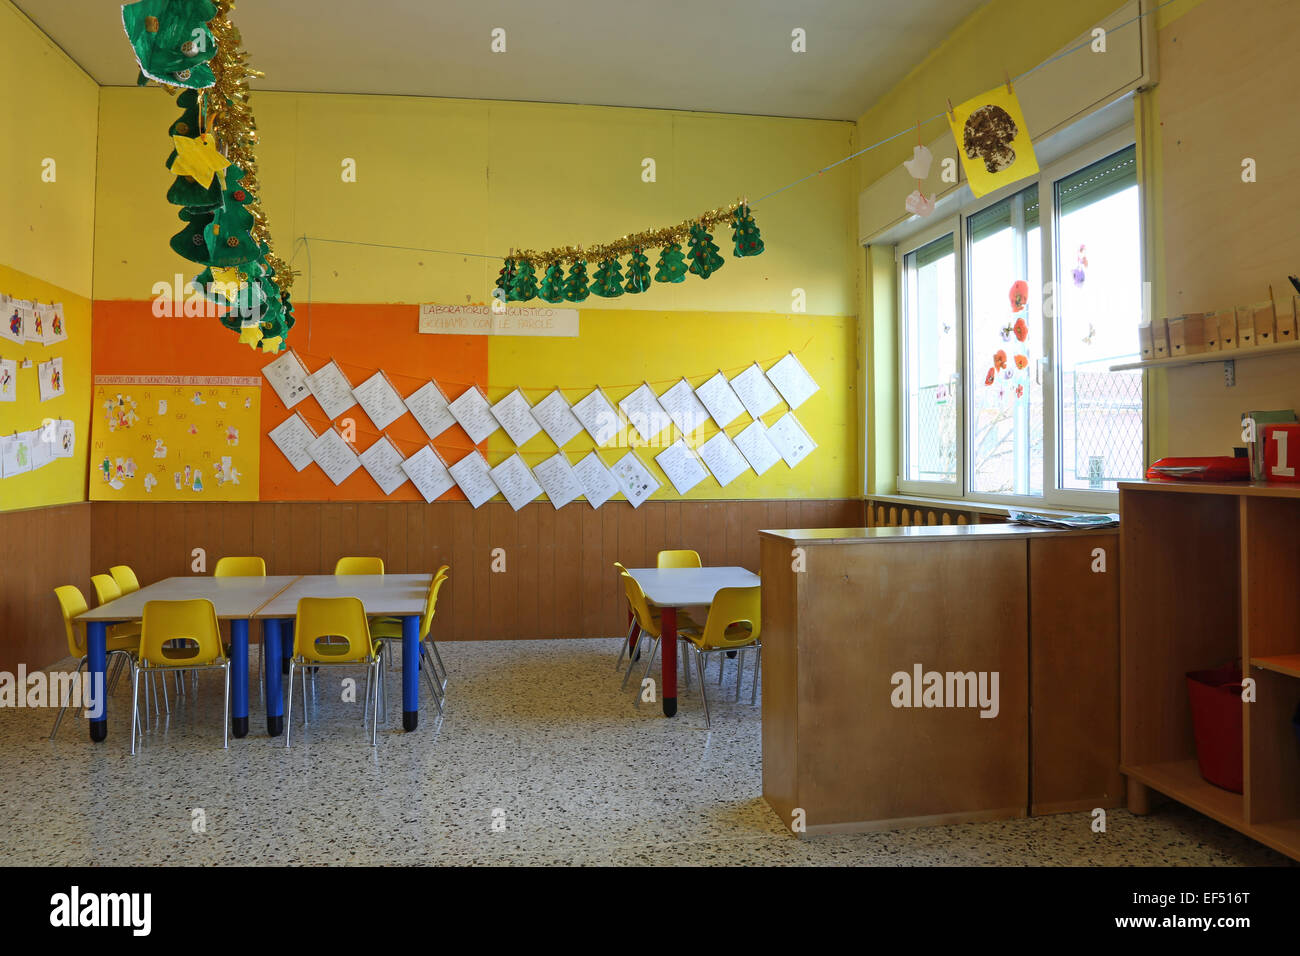 Best paint colors for preschool classrooms - Preschool Classroom With Yellow Chairs And Table With Drawings Of Children Hanging On The Walls